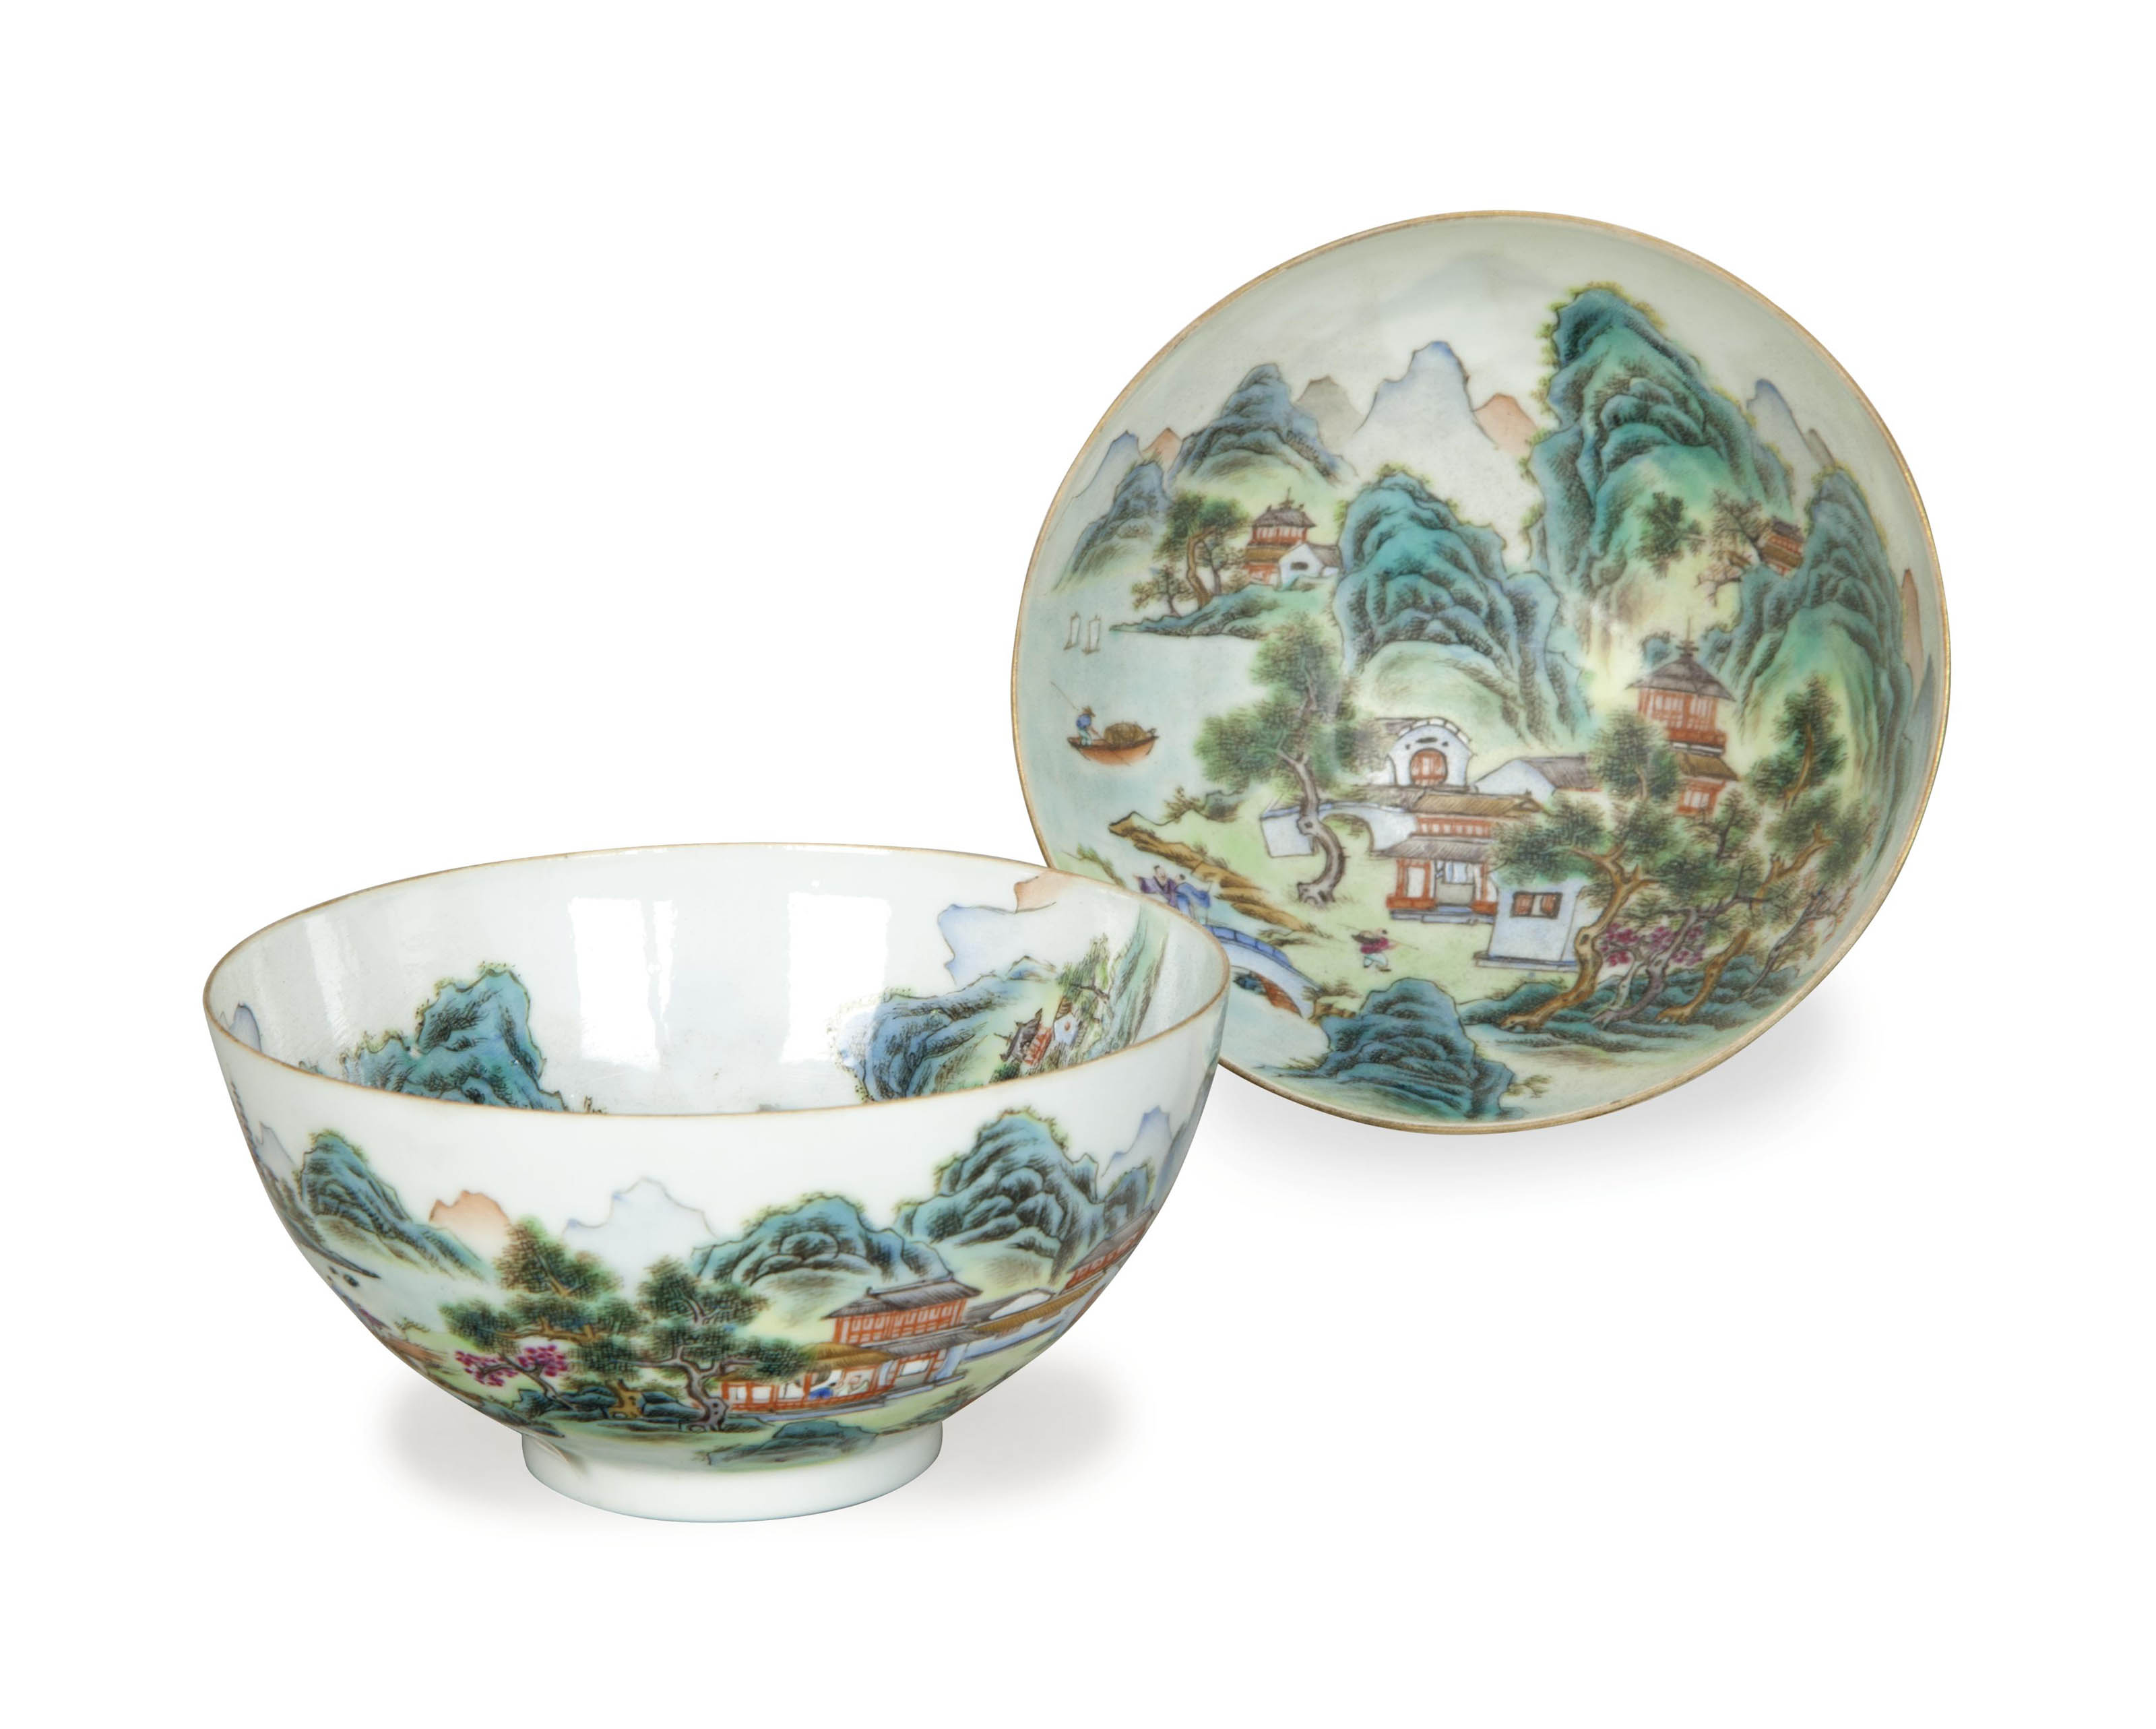 A PAIR OF CHINESE EGGSHELL PORCELAIN FAMILLE ROSE ENAMELED BOWLS